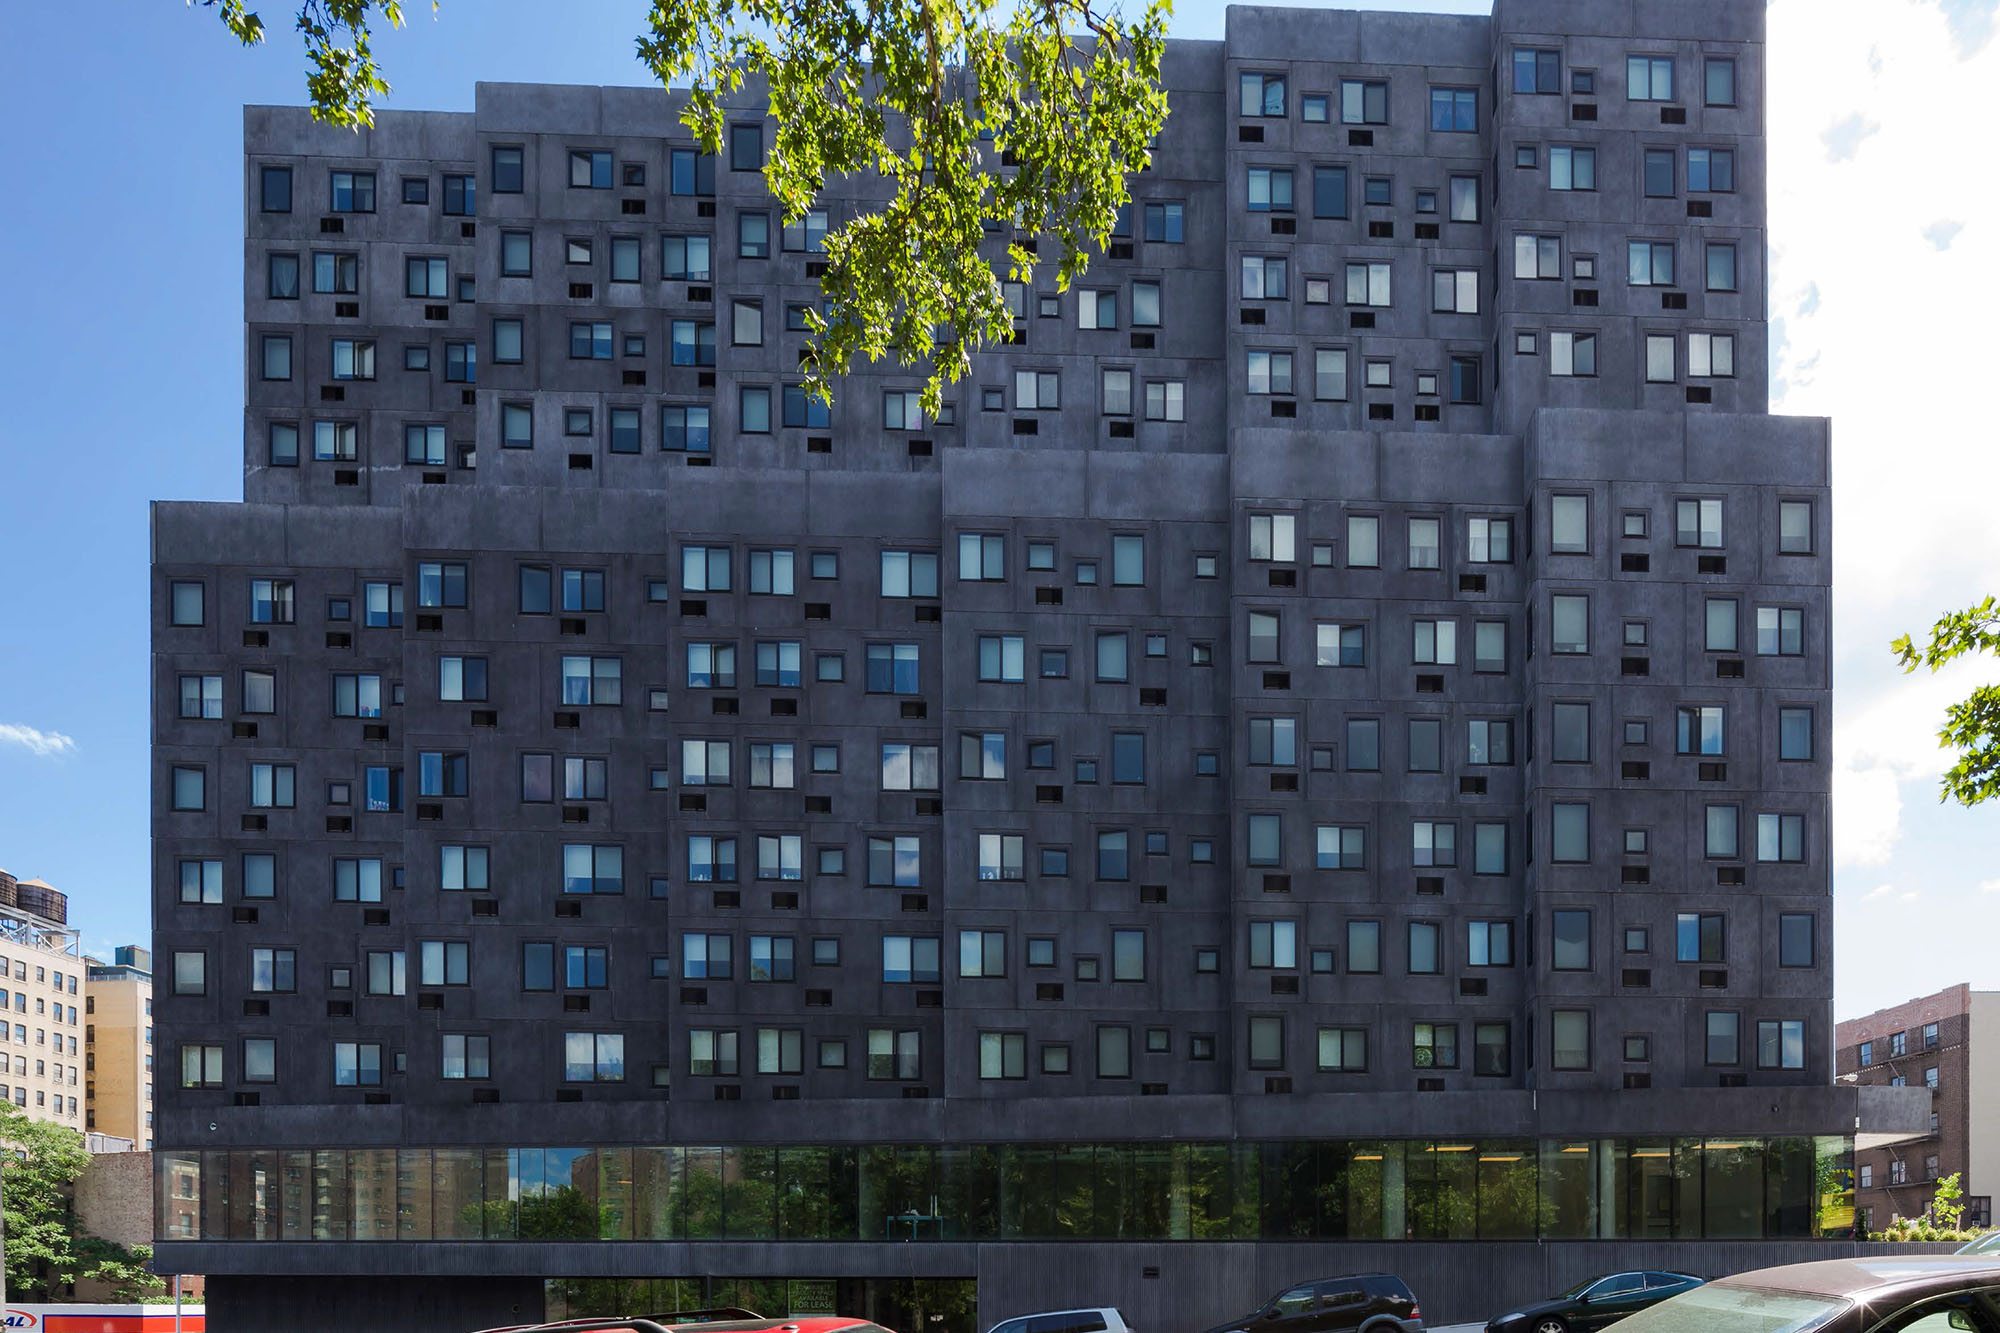 Sugar Hill Housing | Architect Magazine | Adjaye Associates, SLCE ...